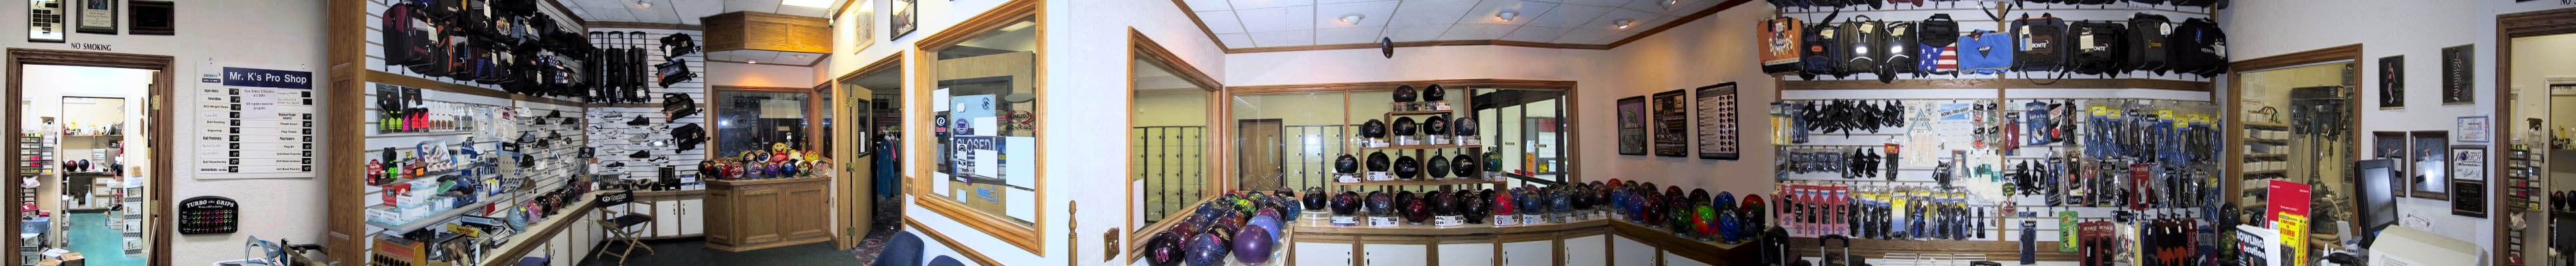 Mr ks pro shop royal scot golf bowling banquets and more 12 malvernweather Choice Image